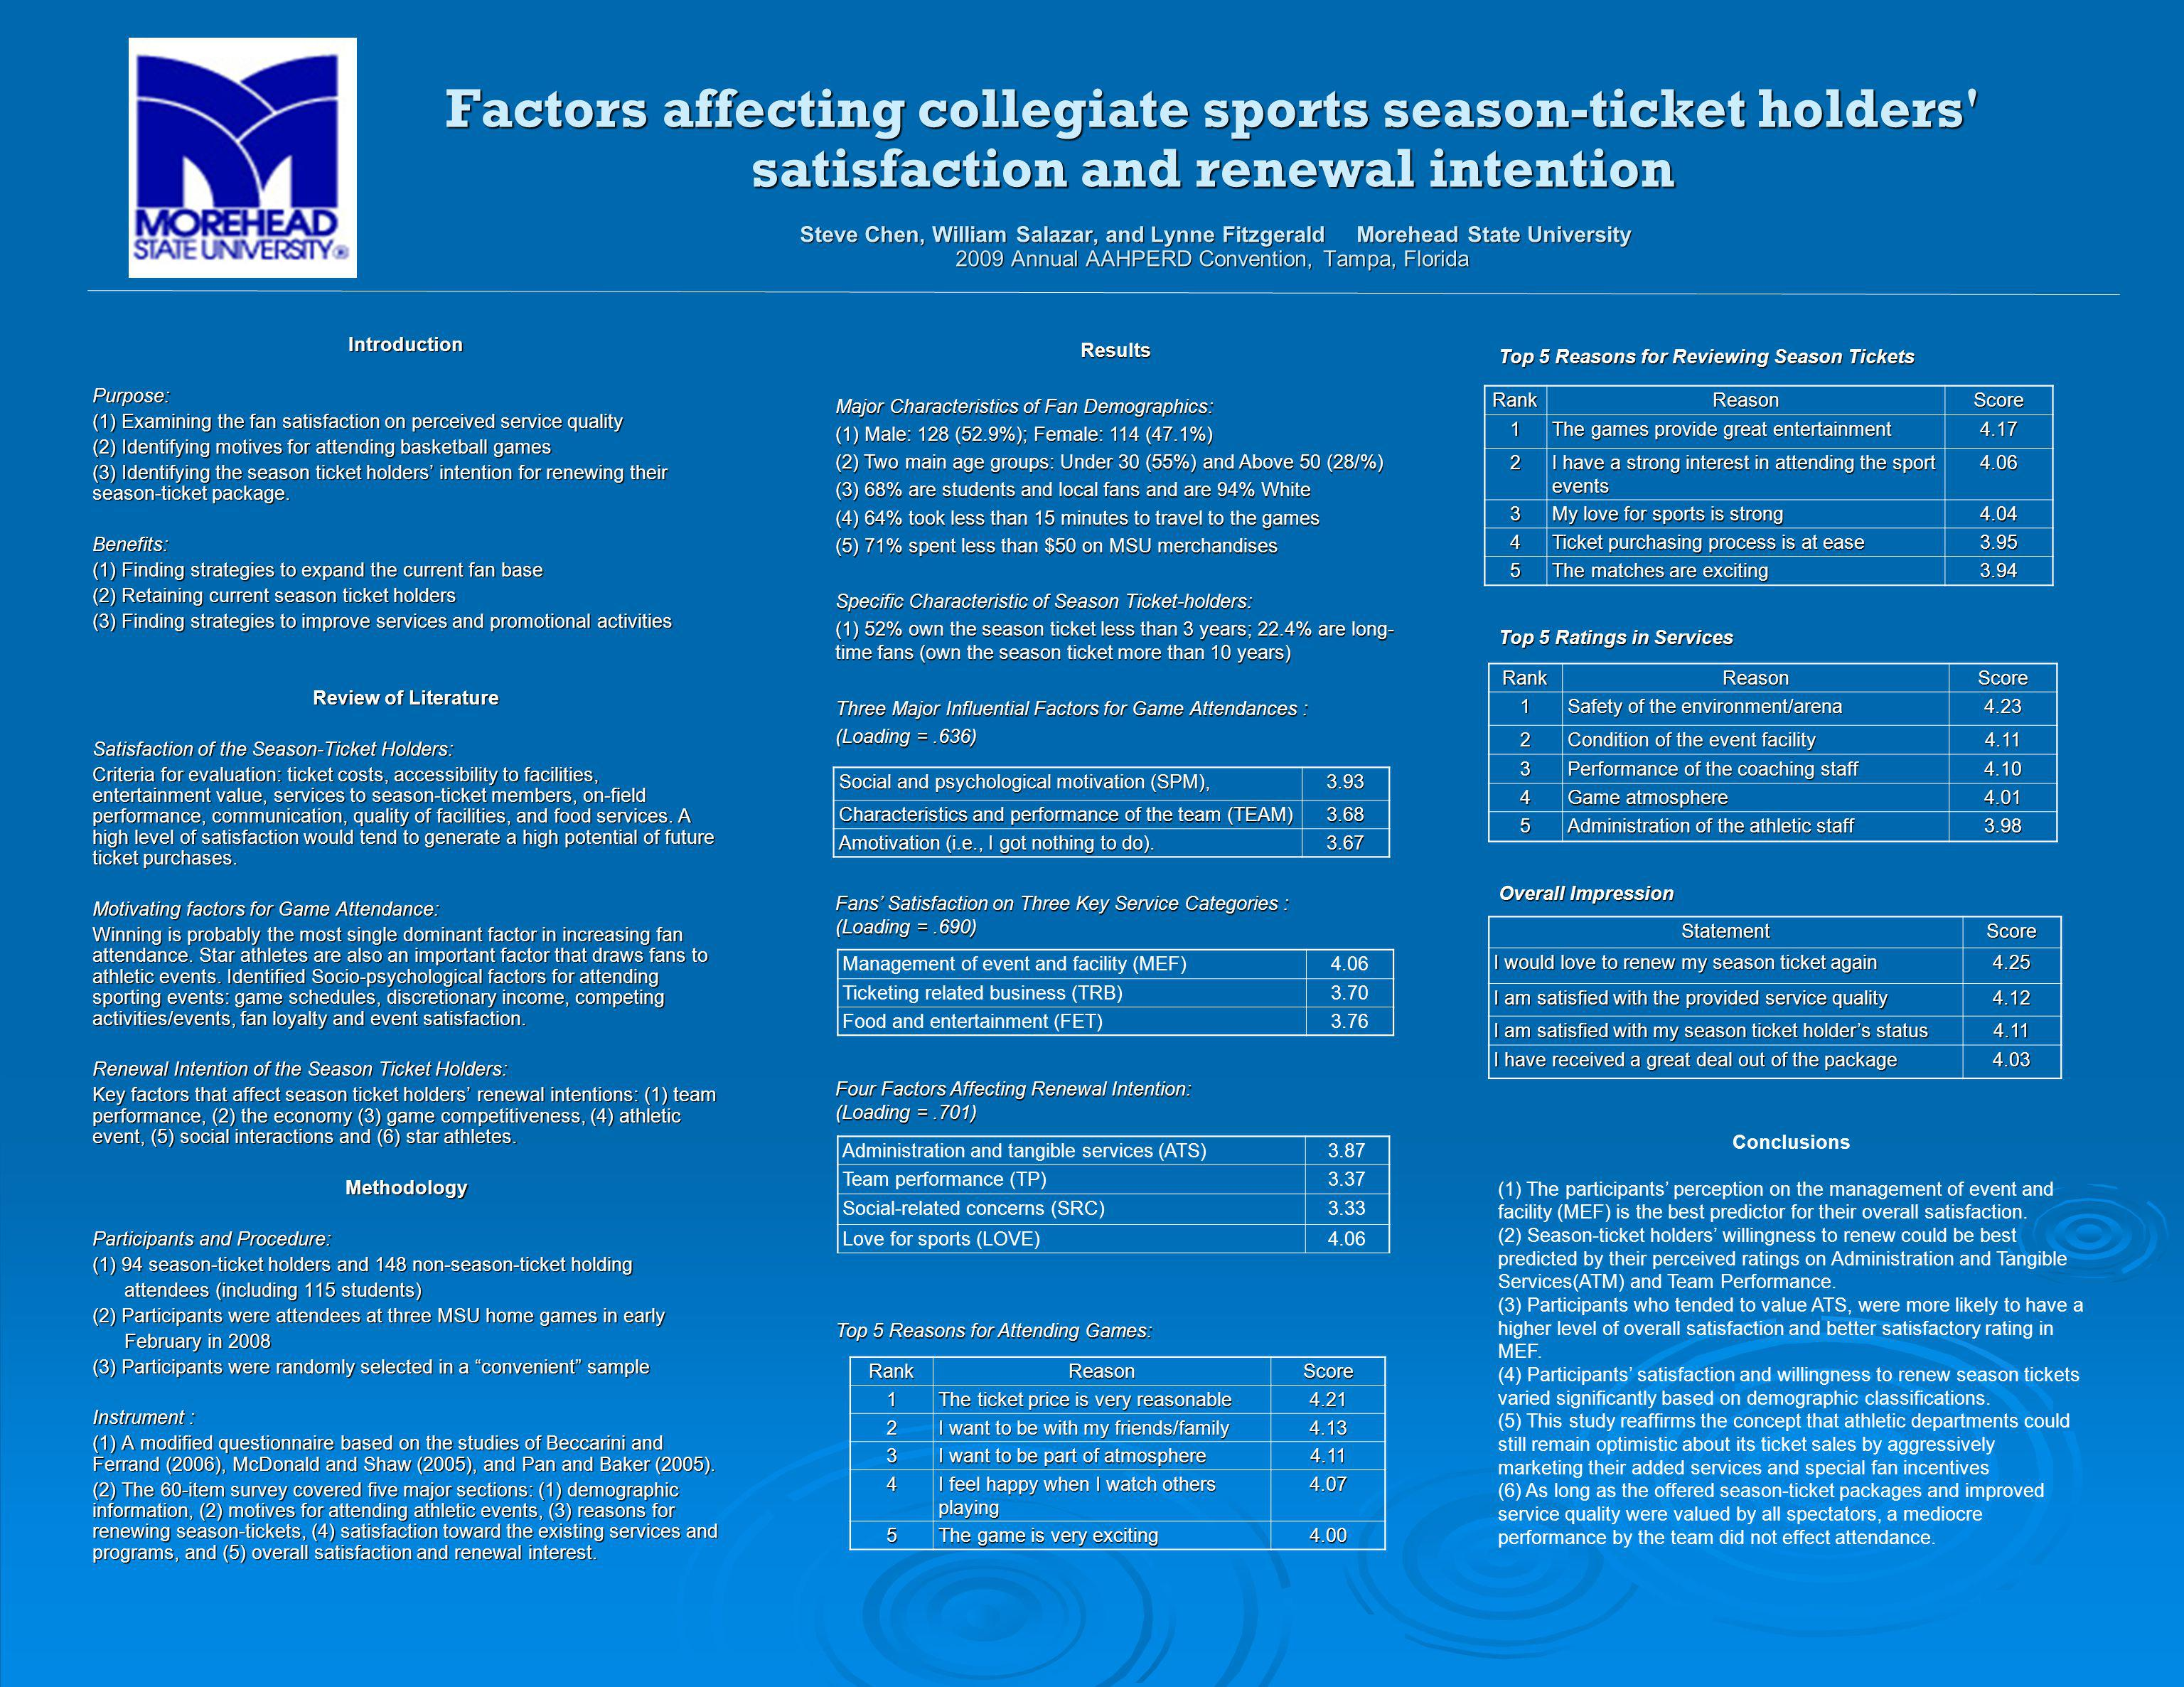 Factors affecting collegiate sports season-ticket holders satisfaction and renewal intention Steve Chen, William Salazar, and Lynne Fitzgerald Morehead State University 2009 Annual AAHPERD Convention, Tampa, Florida IntroductionPurpose: (1) Examining the fan satisfaction on perceived service quality (2) Identifying motives for attending basketball games (3) Identifying the season ticket holders intention for renewing their season-ticket package.